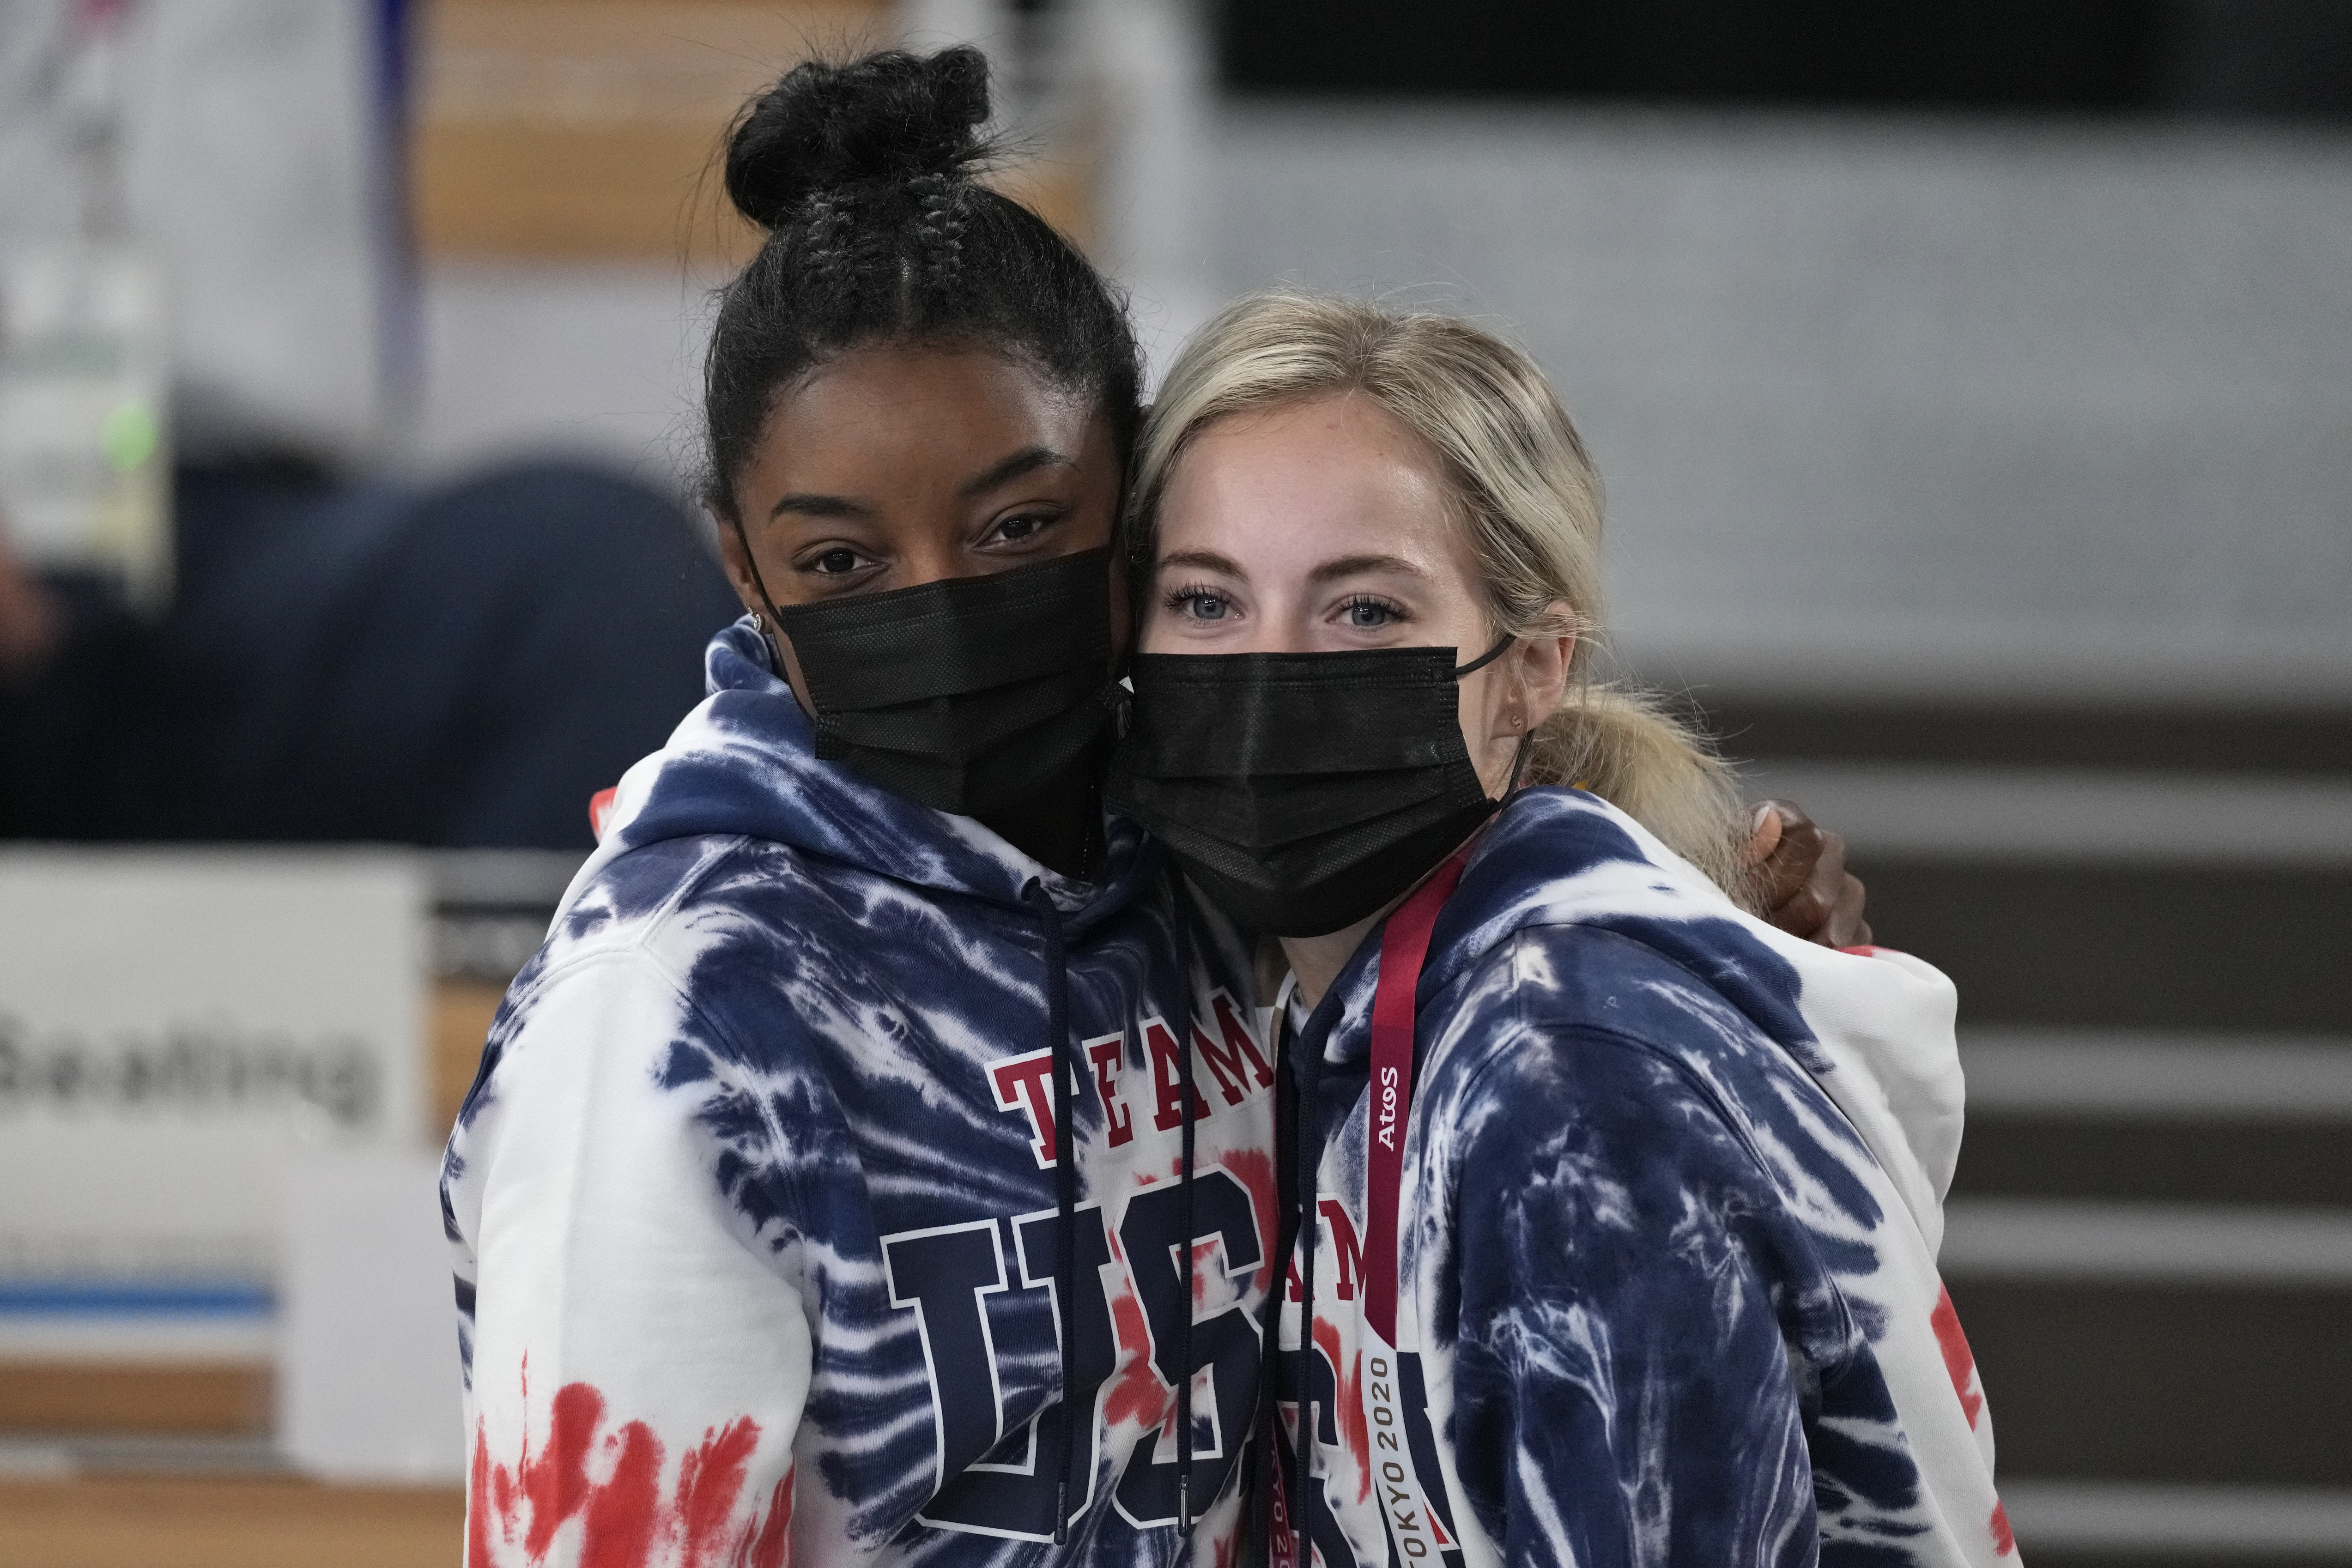 Simone Biles, of United States, poses with teammate Mykayla Skinner as they watch the artistic gymnastics men's all-around final.